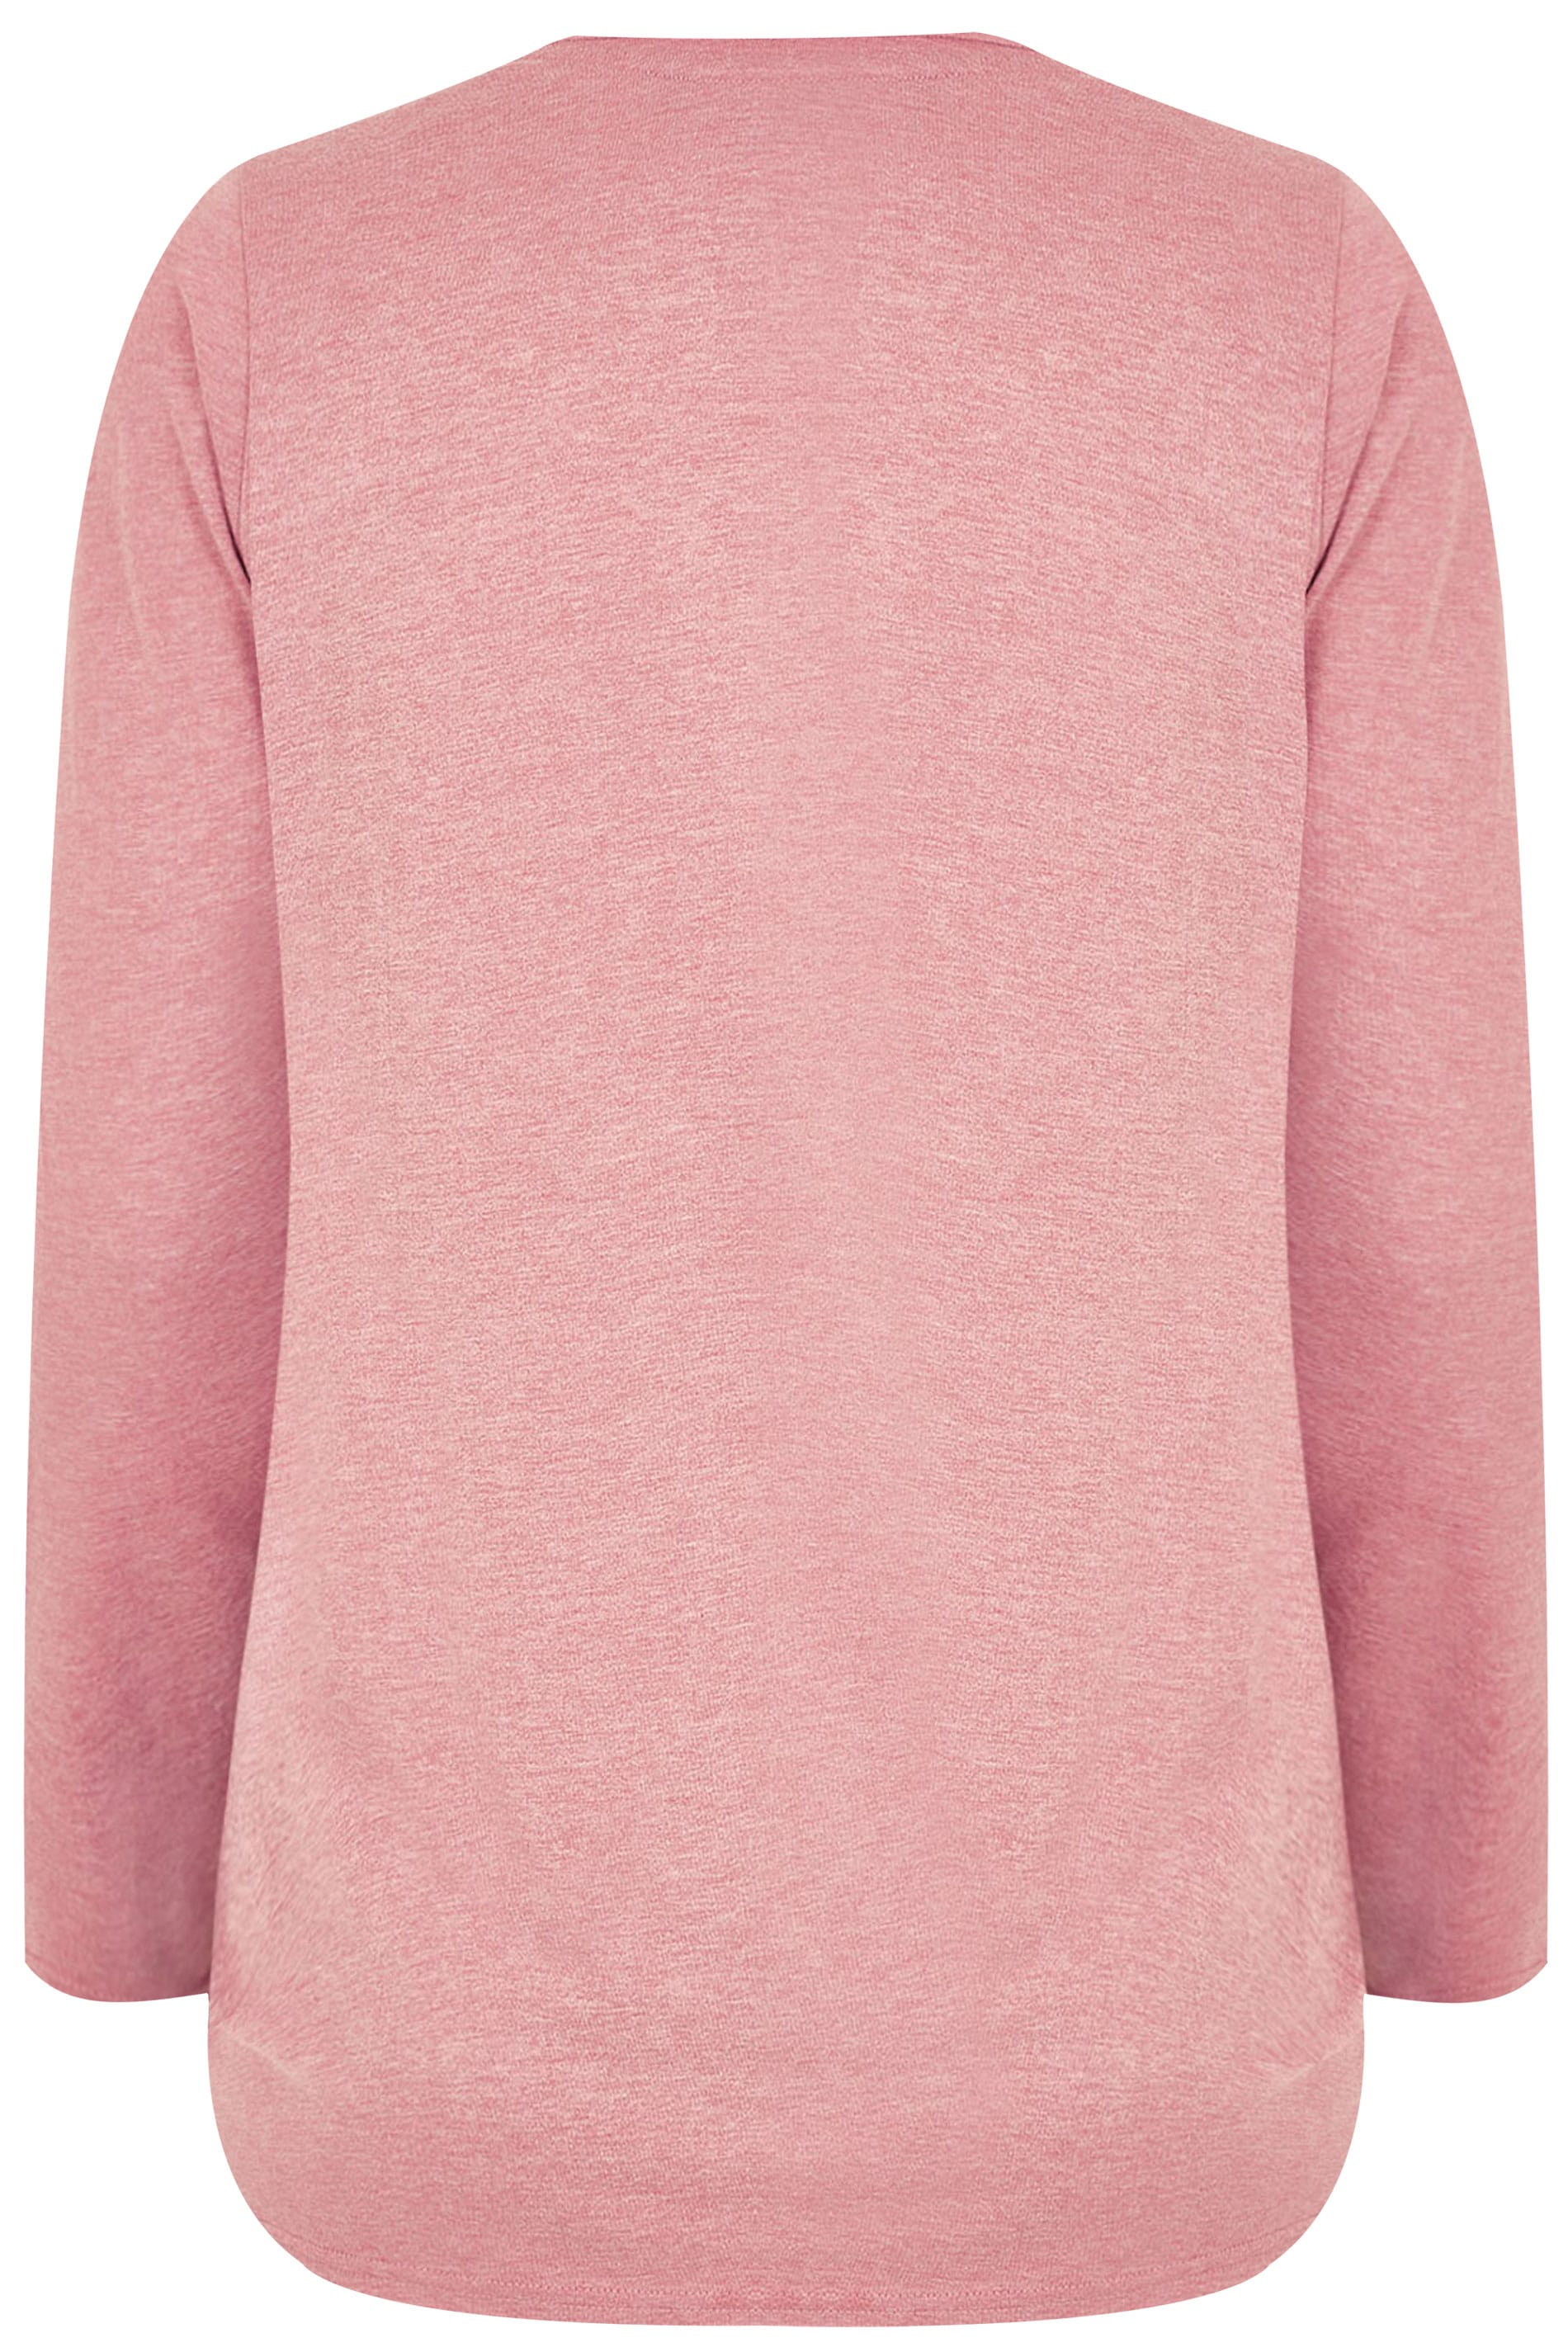 Pink Marl Long Sleeved V-Neck Jersey Top, Plus size 16 to 36